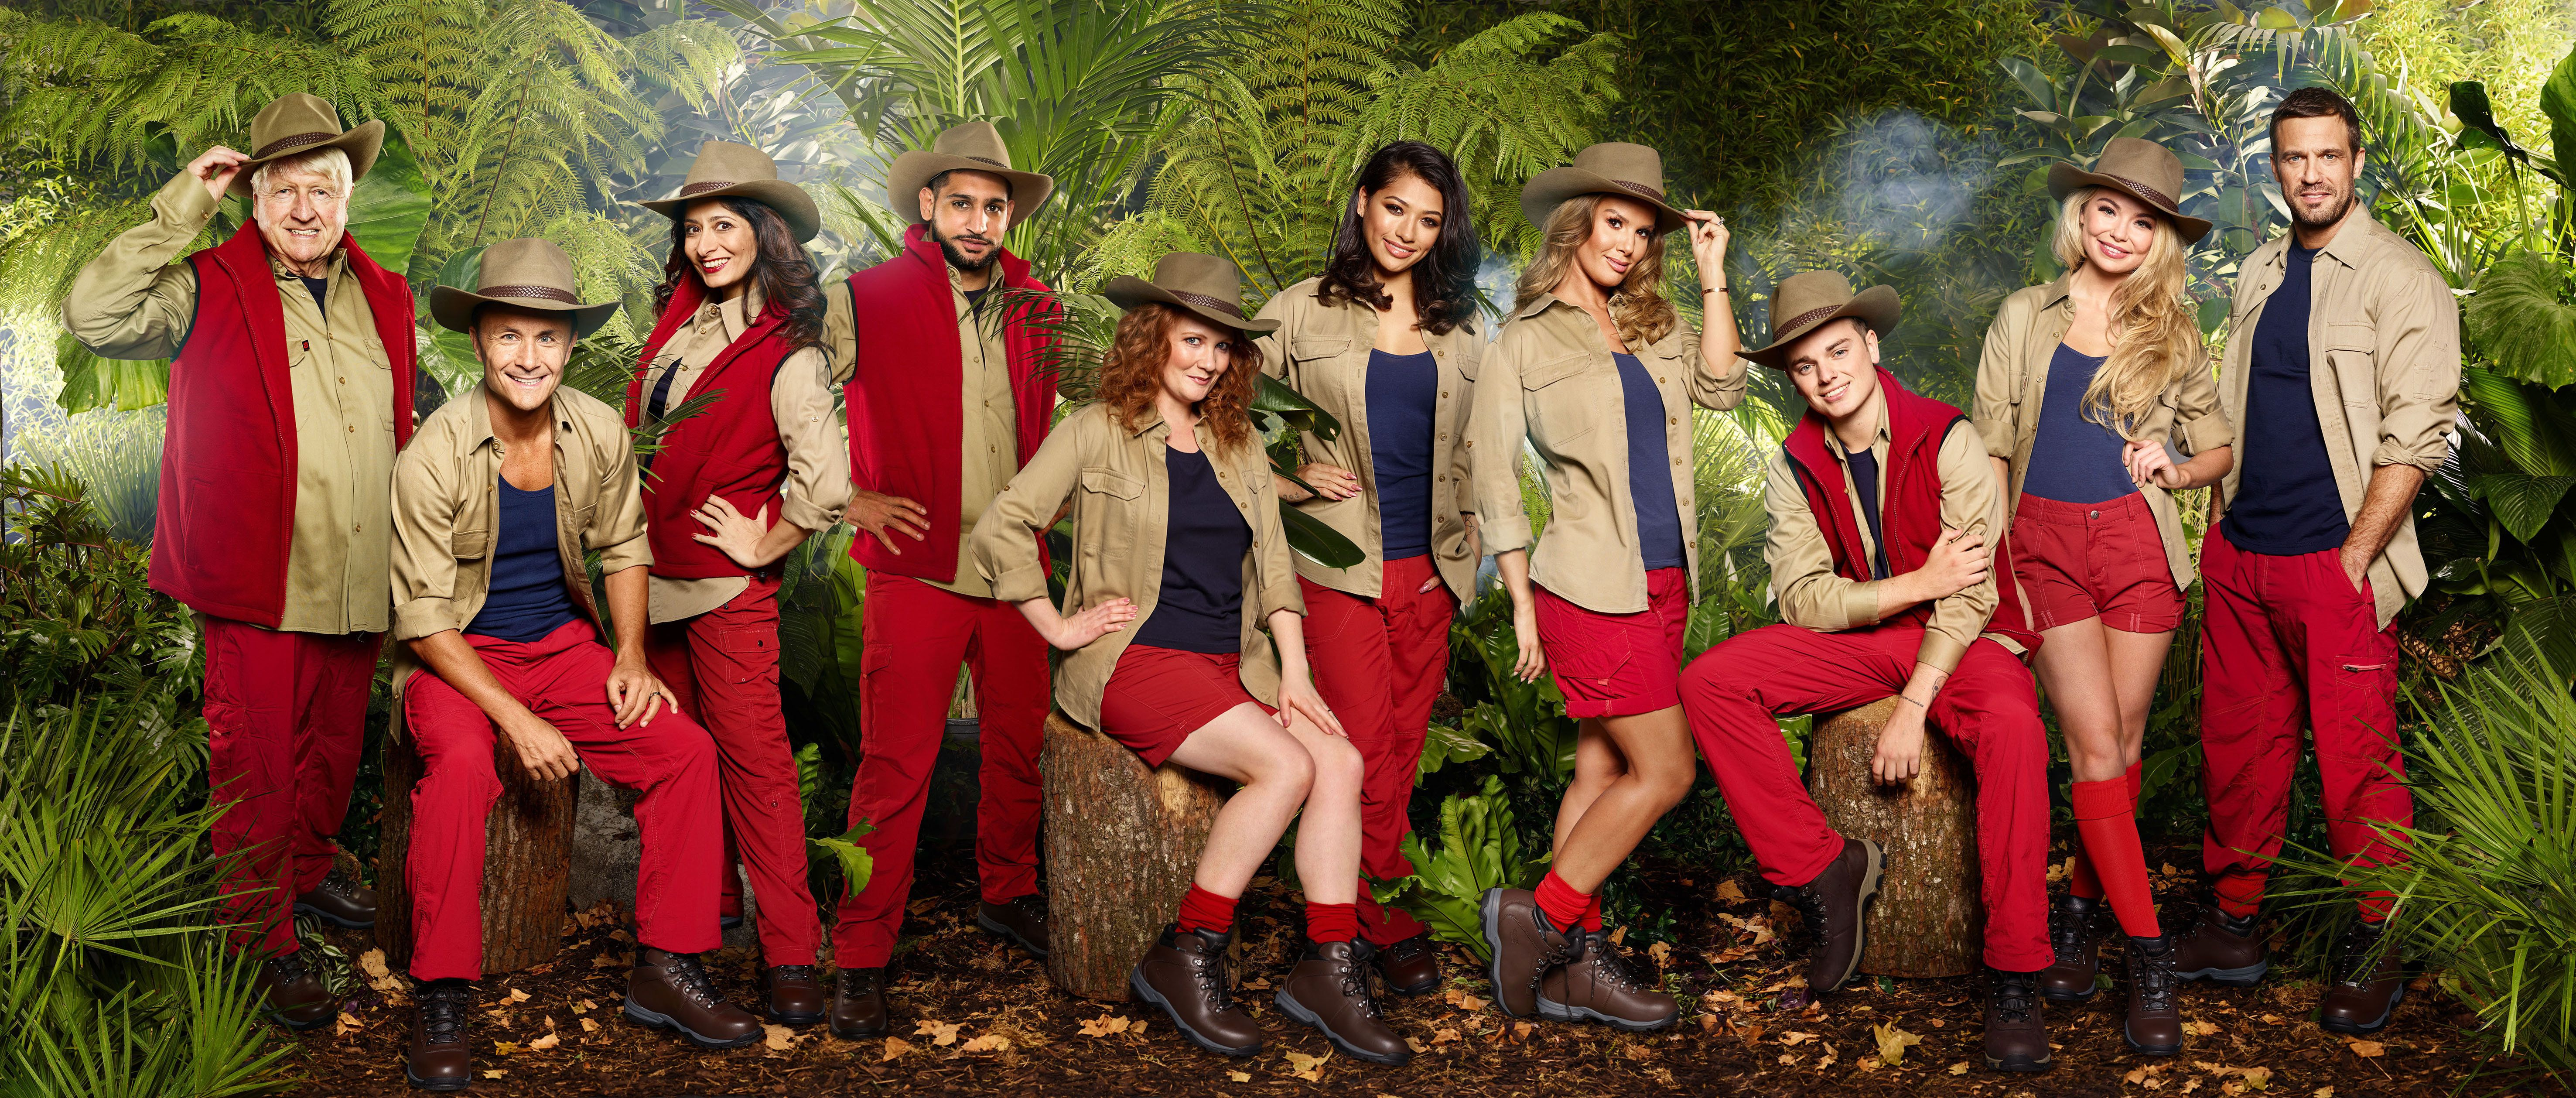 Meet The Two New 'I'm A Celebrity' Contestants Set To Join